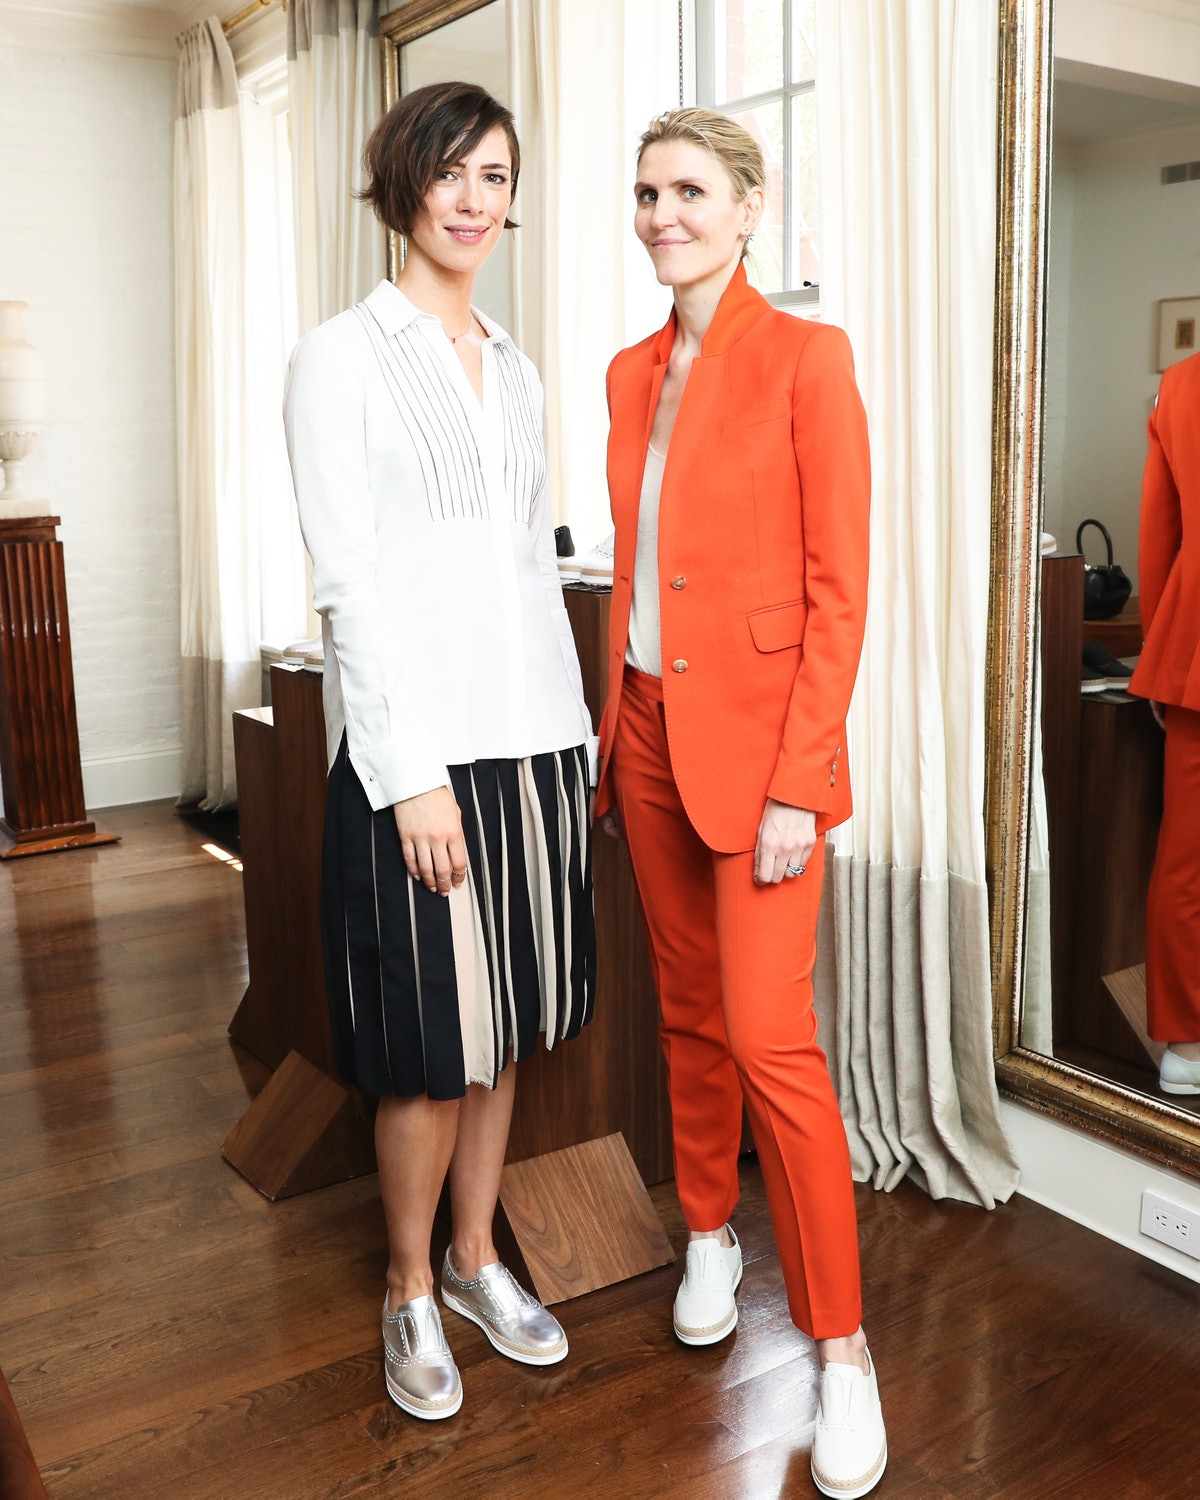 Tod's Celebrates: the limited edition shoe collaboration with Gabriela Hearst